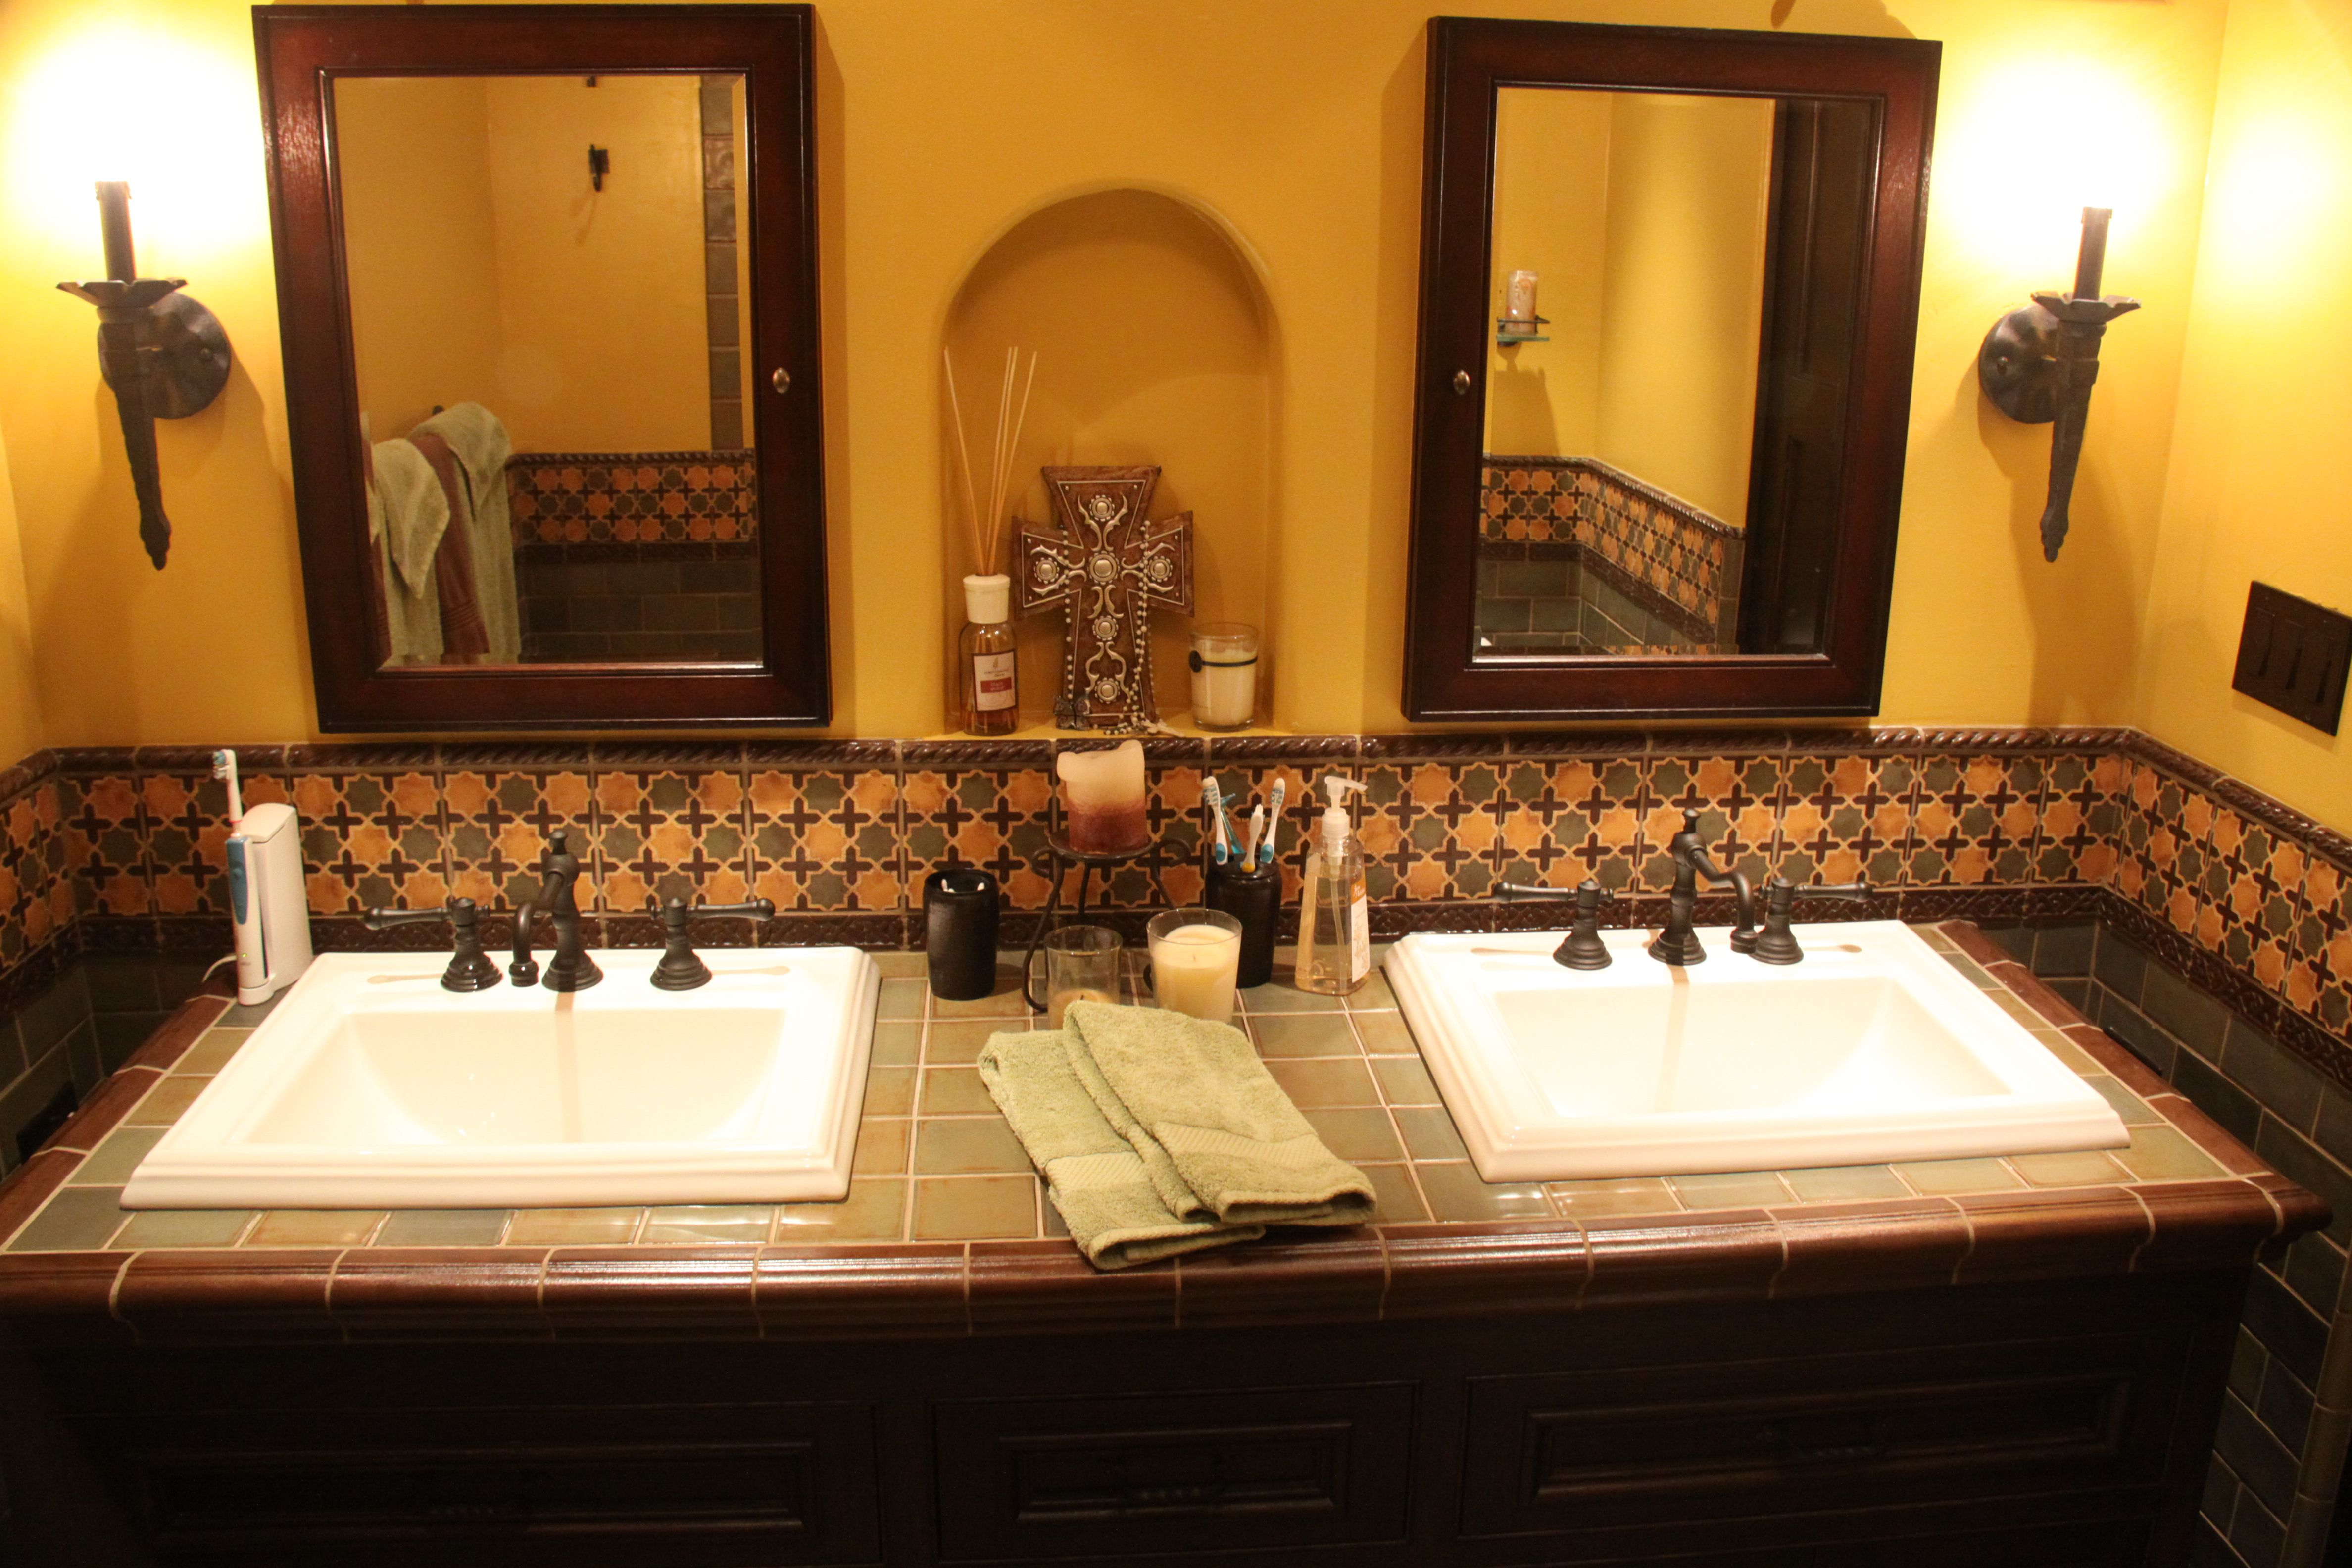 Spanish Style Bathrooms Tile Bath I Did In A Early California Spanish Style Home In